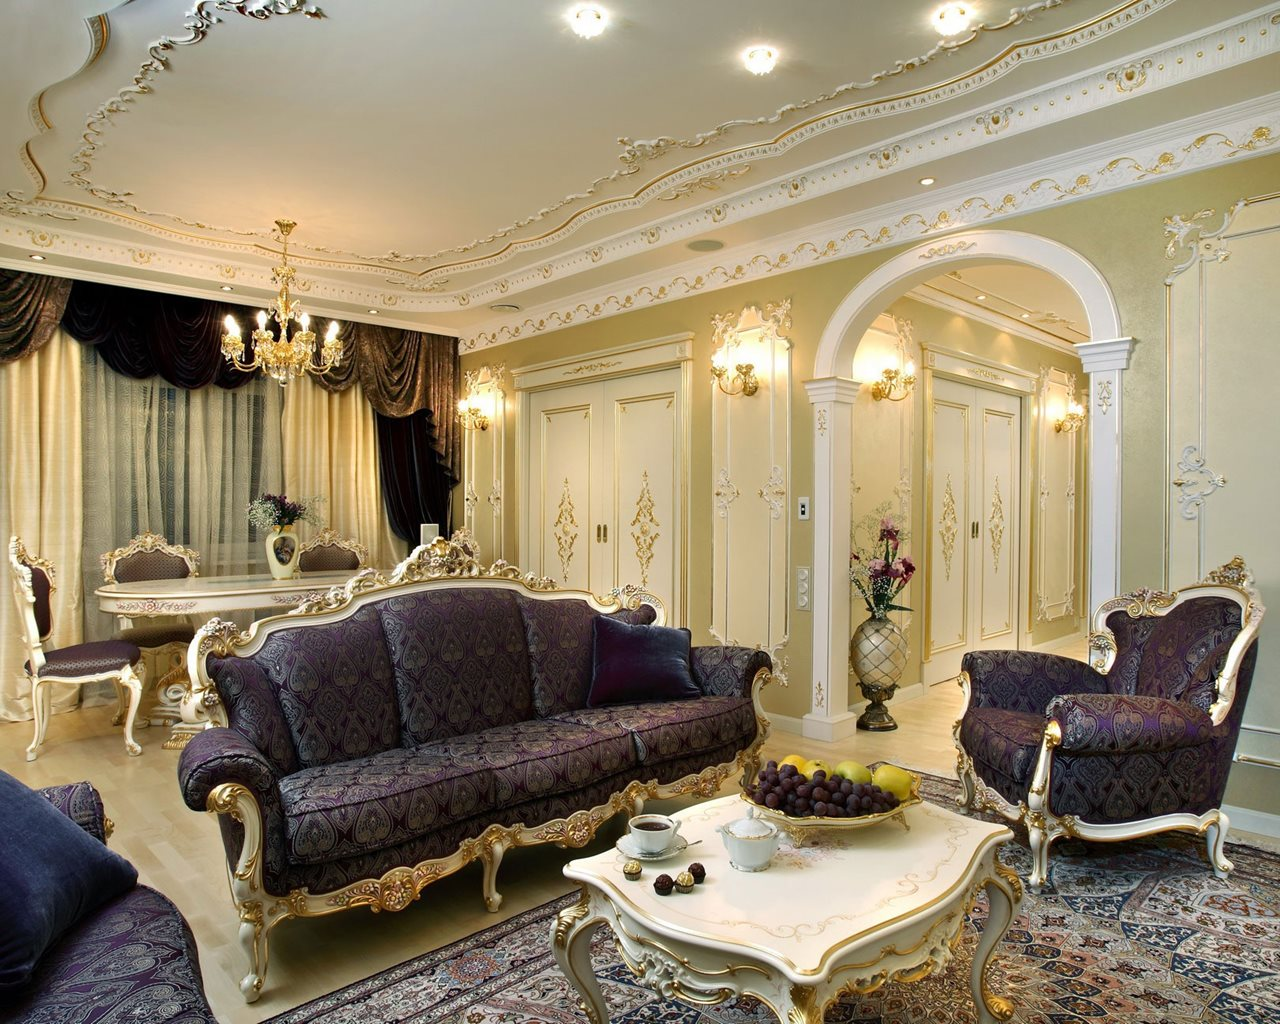 Interior Design Ideas For Living Rooms: Baroque Style Interior Design Ideas